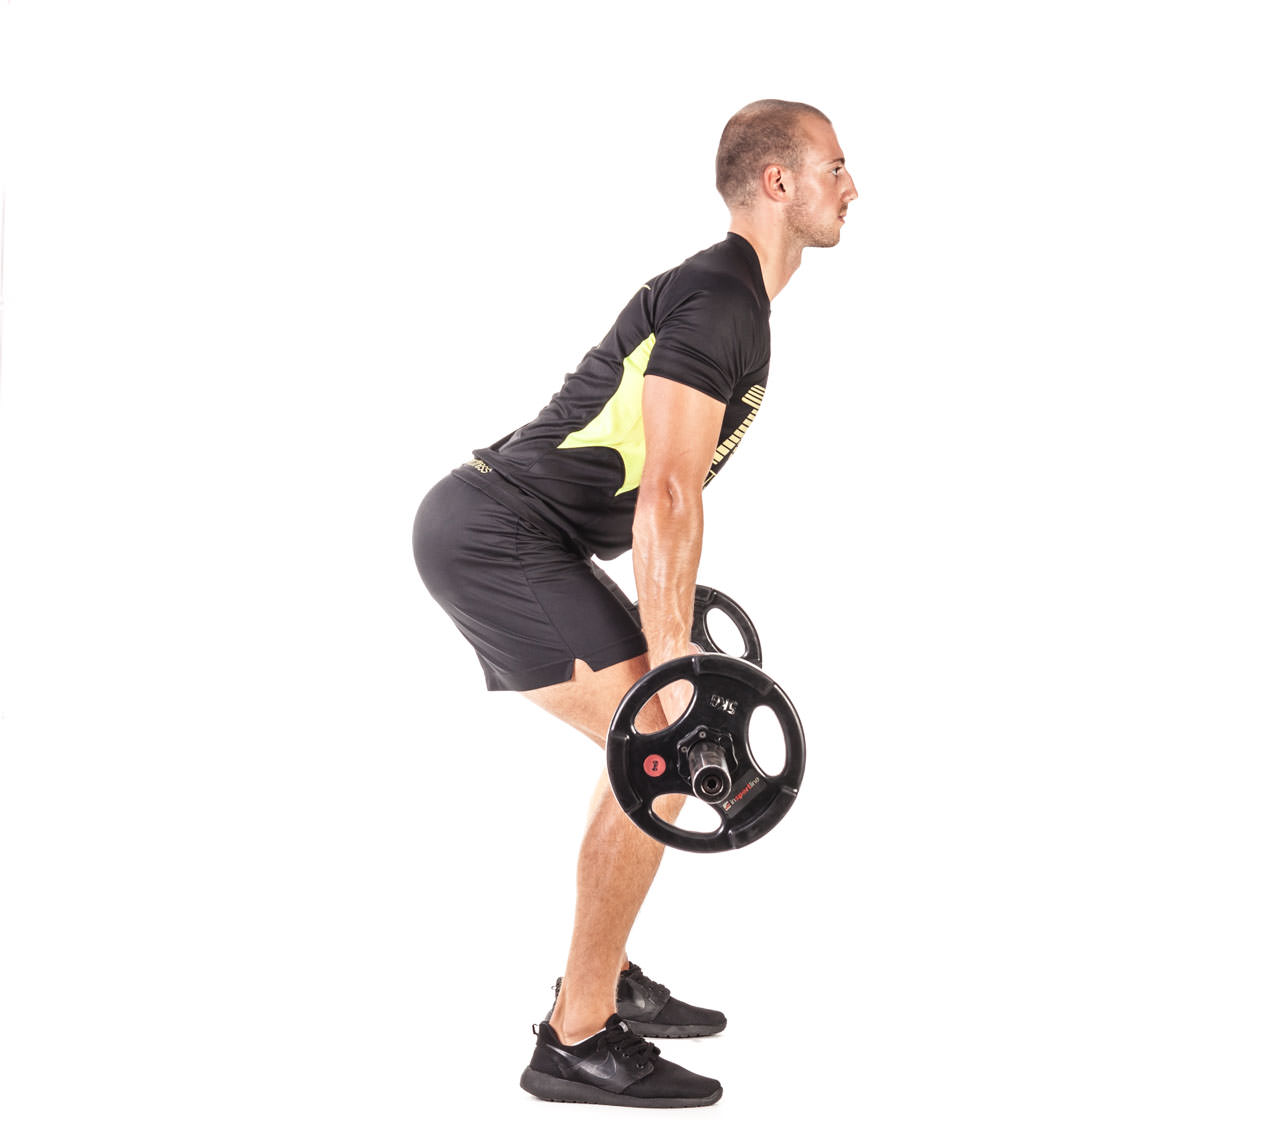 Barbell Bent Over Row (Reverse Grip) frame #6